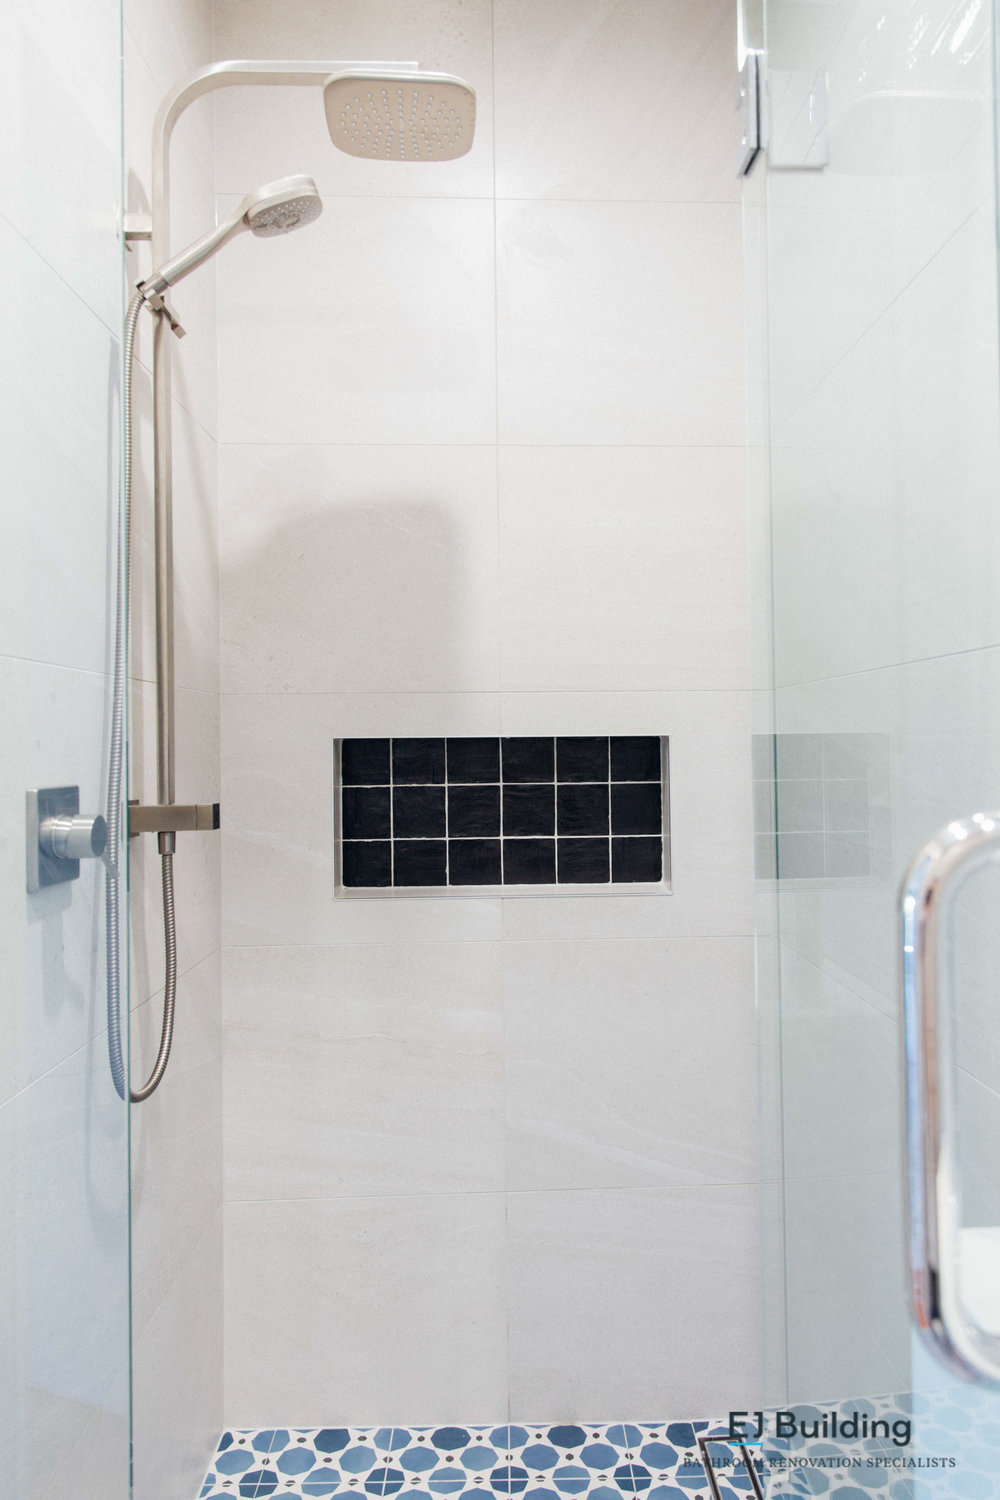 Bathroom renovations auckland. Modern design ideas.